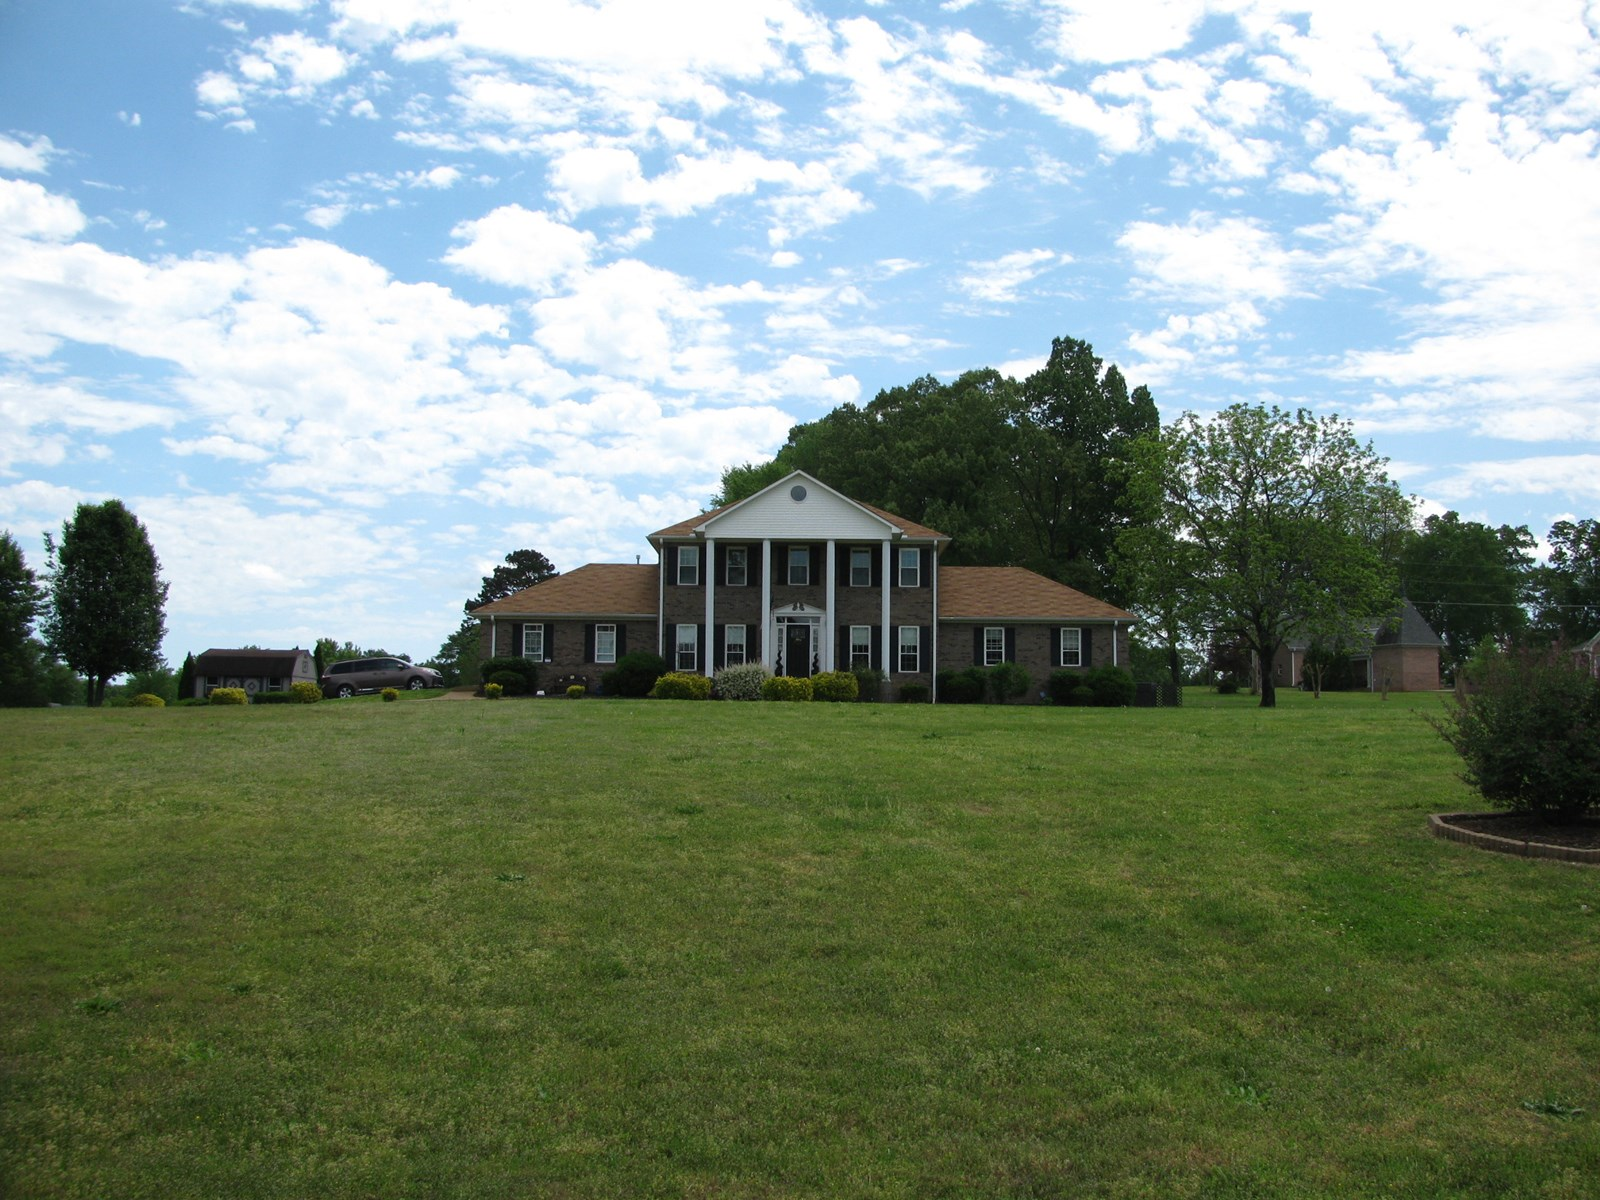 BEAUTIFUL COUNTRY HOME IN TN FOR SALE, POOL, GARAGE